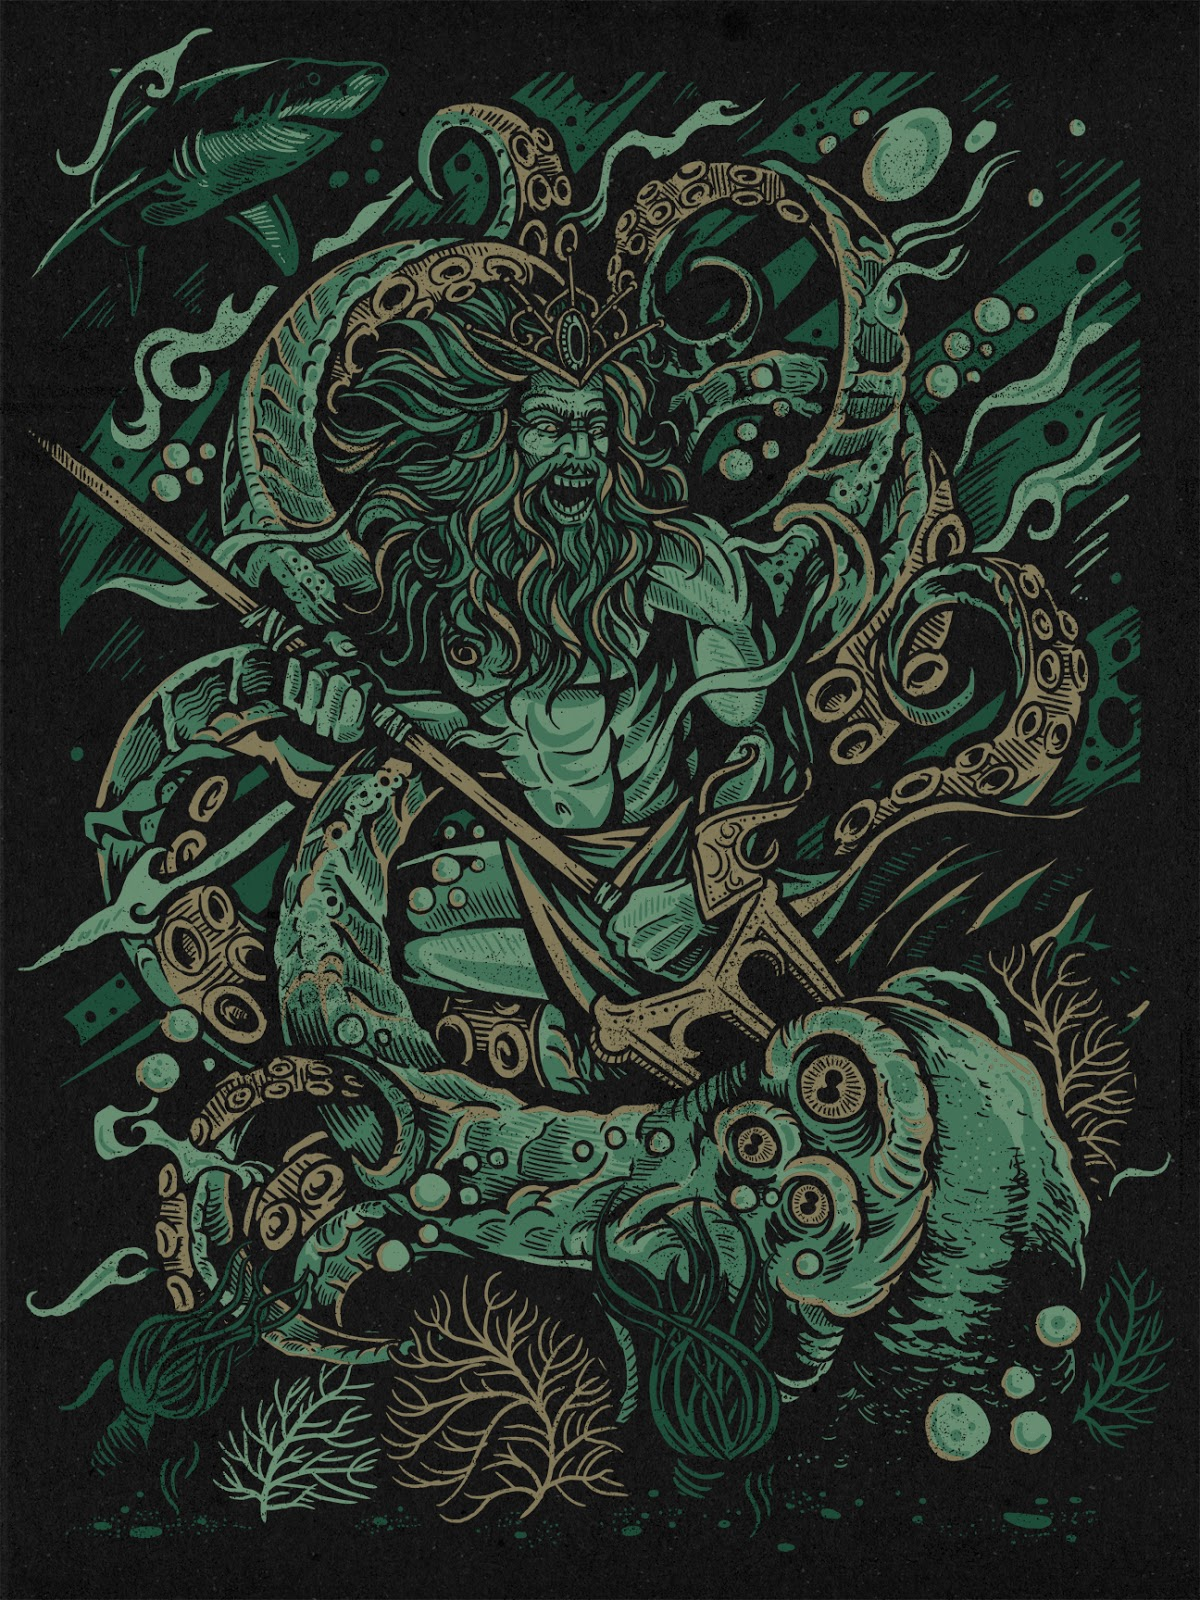 INSIDE THE ROCK POSTER FRAME BLOG: Kraken Battle Print by Derrick ...